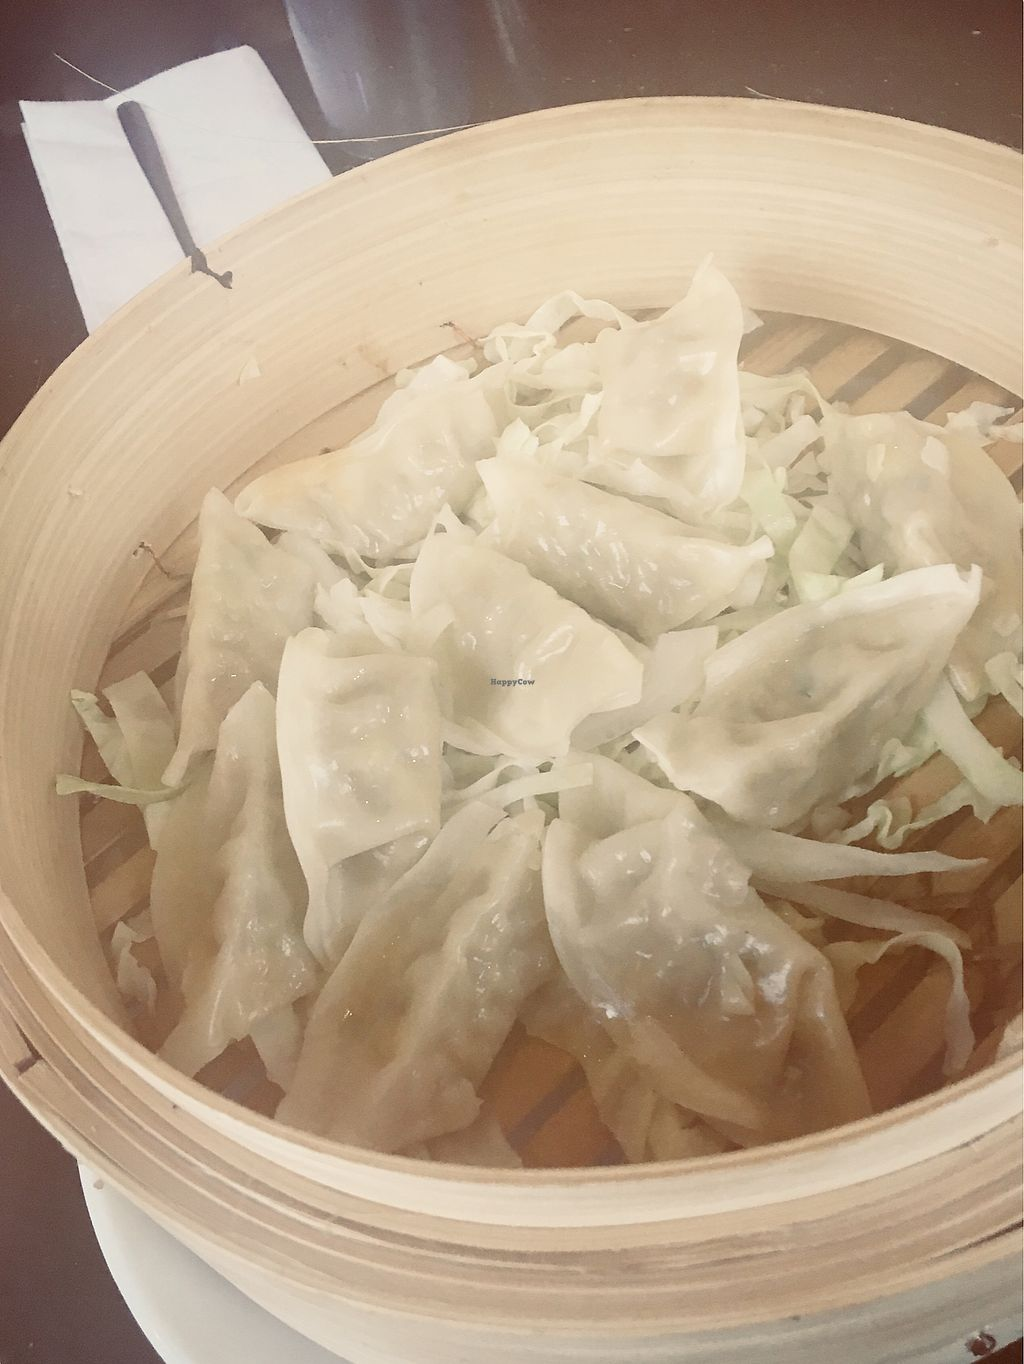 """Photo of Soon's Tofu  by <a href=""""/members/profile/Clean%26Green"""">Clean&Green</a> <br/>Steamed vegetable dumplings  <br/> November 28, 2017  - <a href='/contact/abuse/image/104099/329915'>Report</a>"""